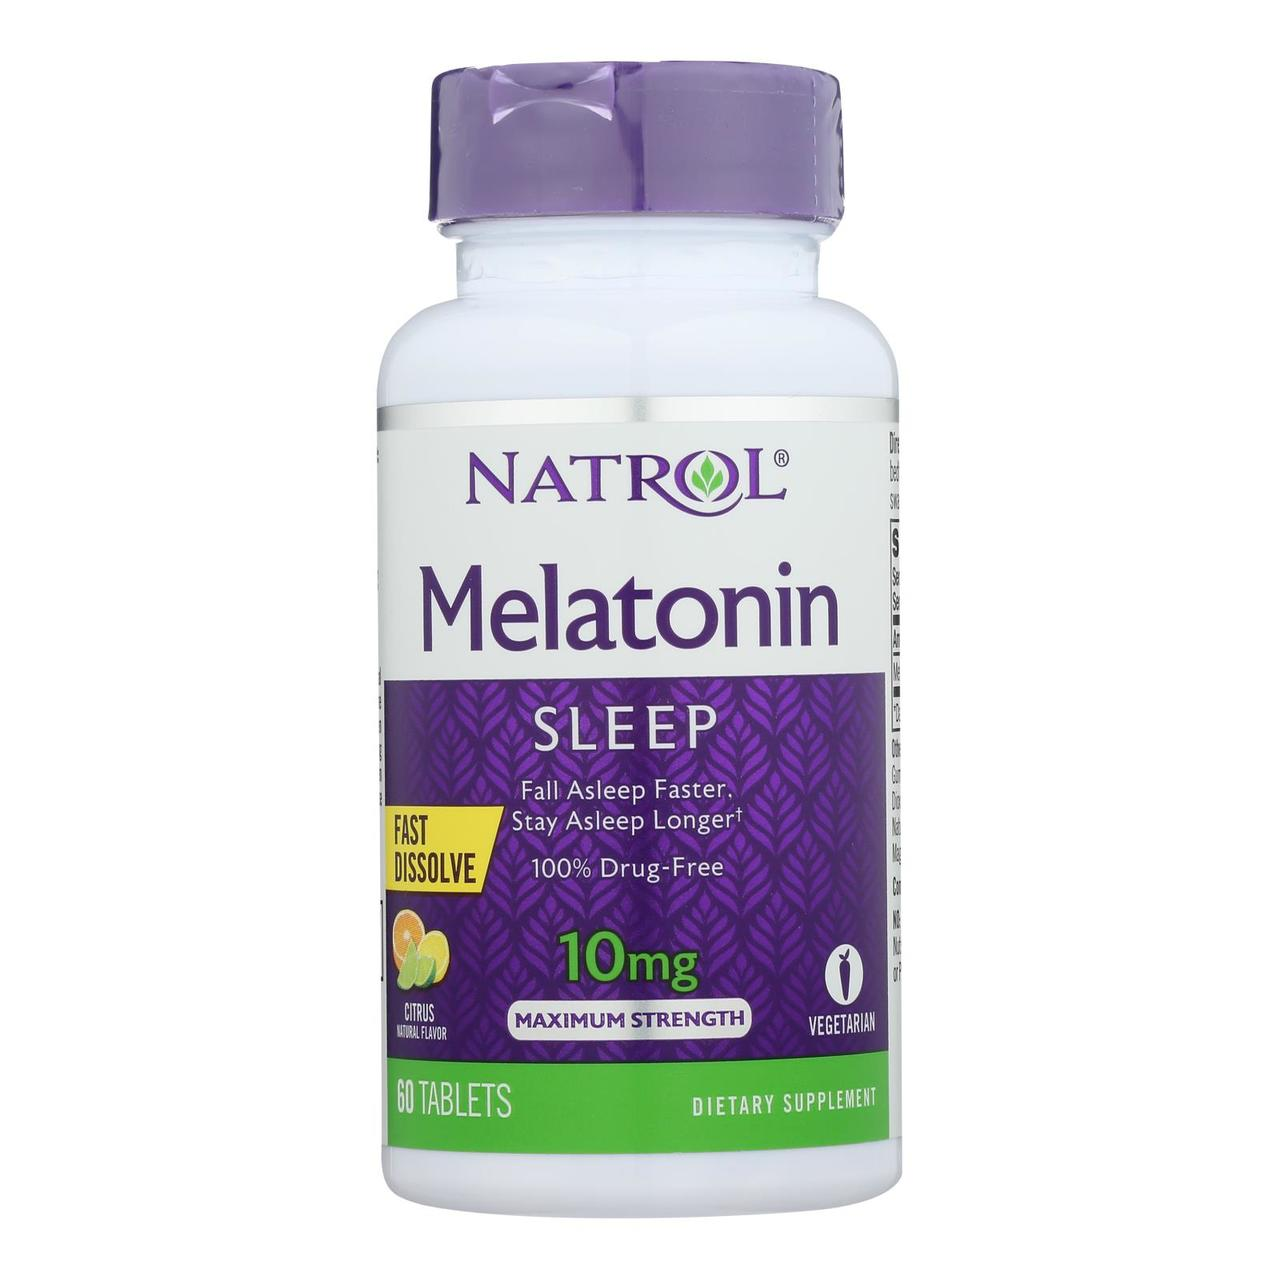 Natrol Melatonin Fast Dissolve Tablets Citrus Punch 10mg, 60 Count (Pack of 6) - $48.06